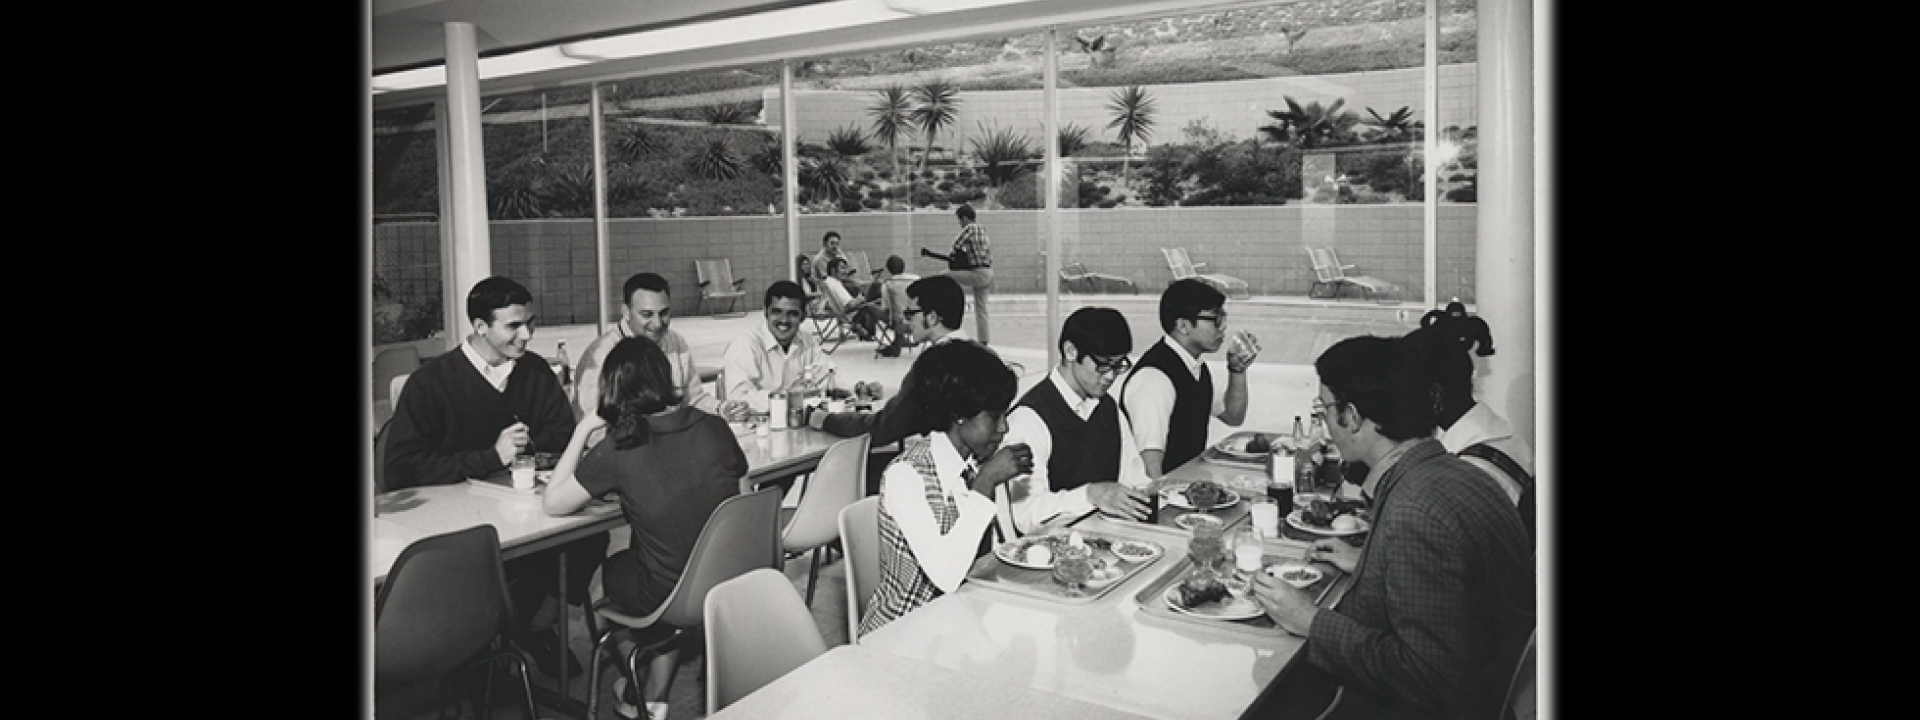 Cal State LA students in cafeteria during the 1970s